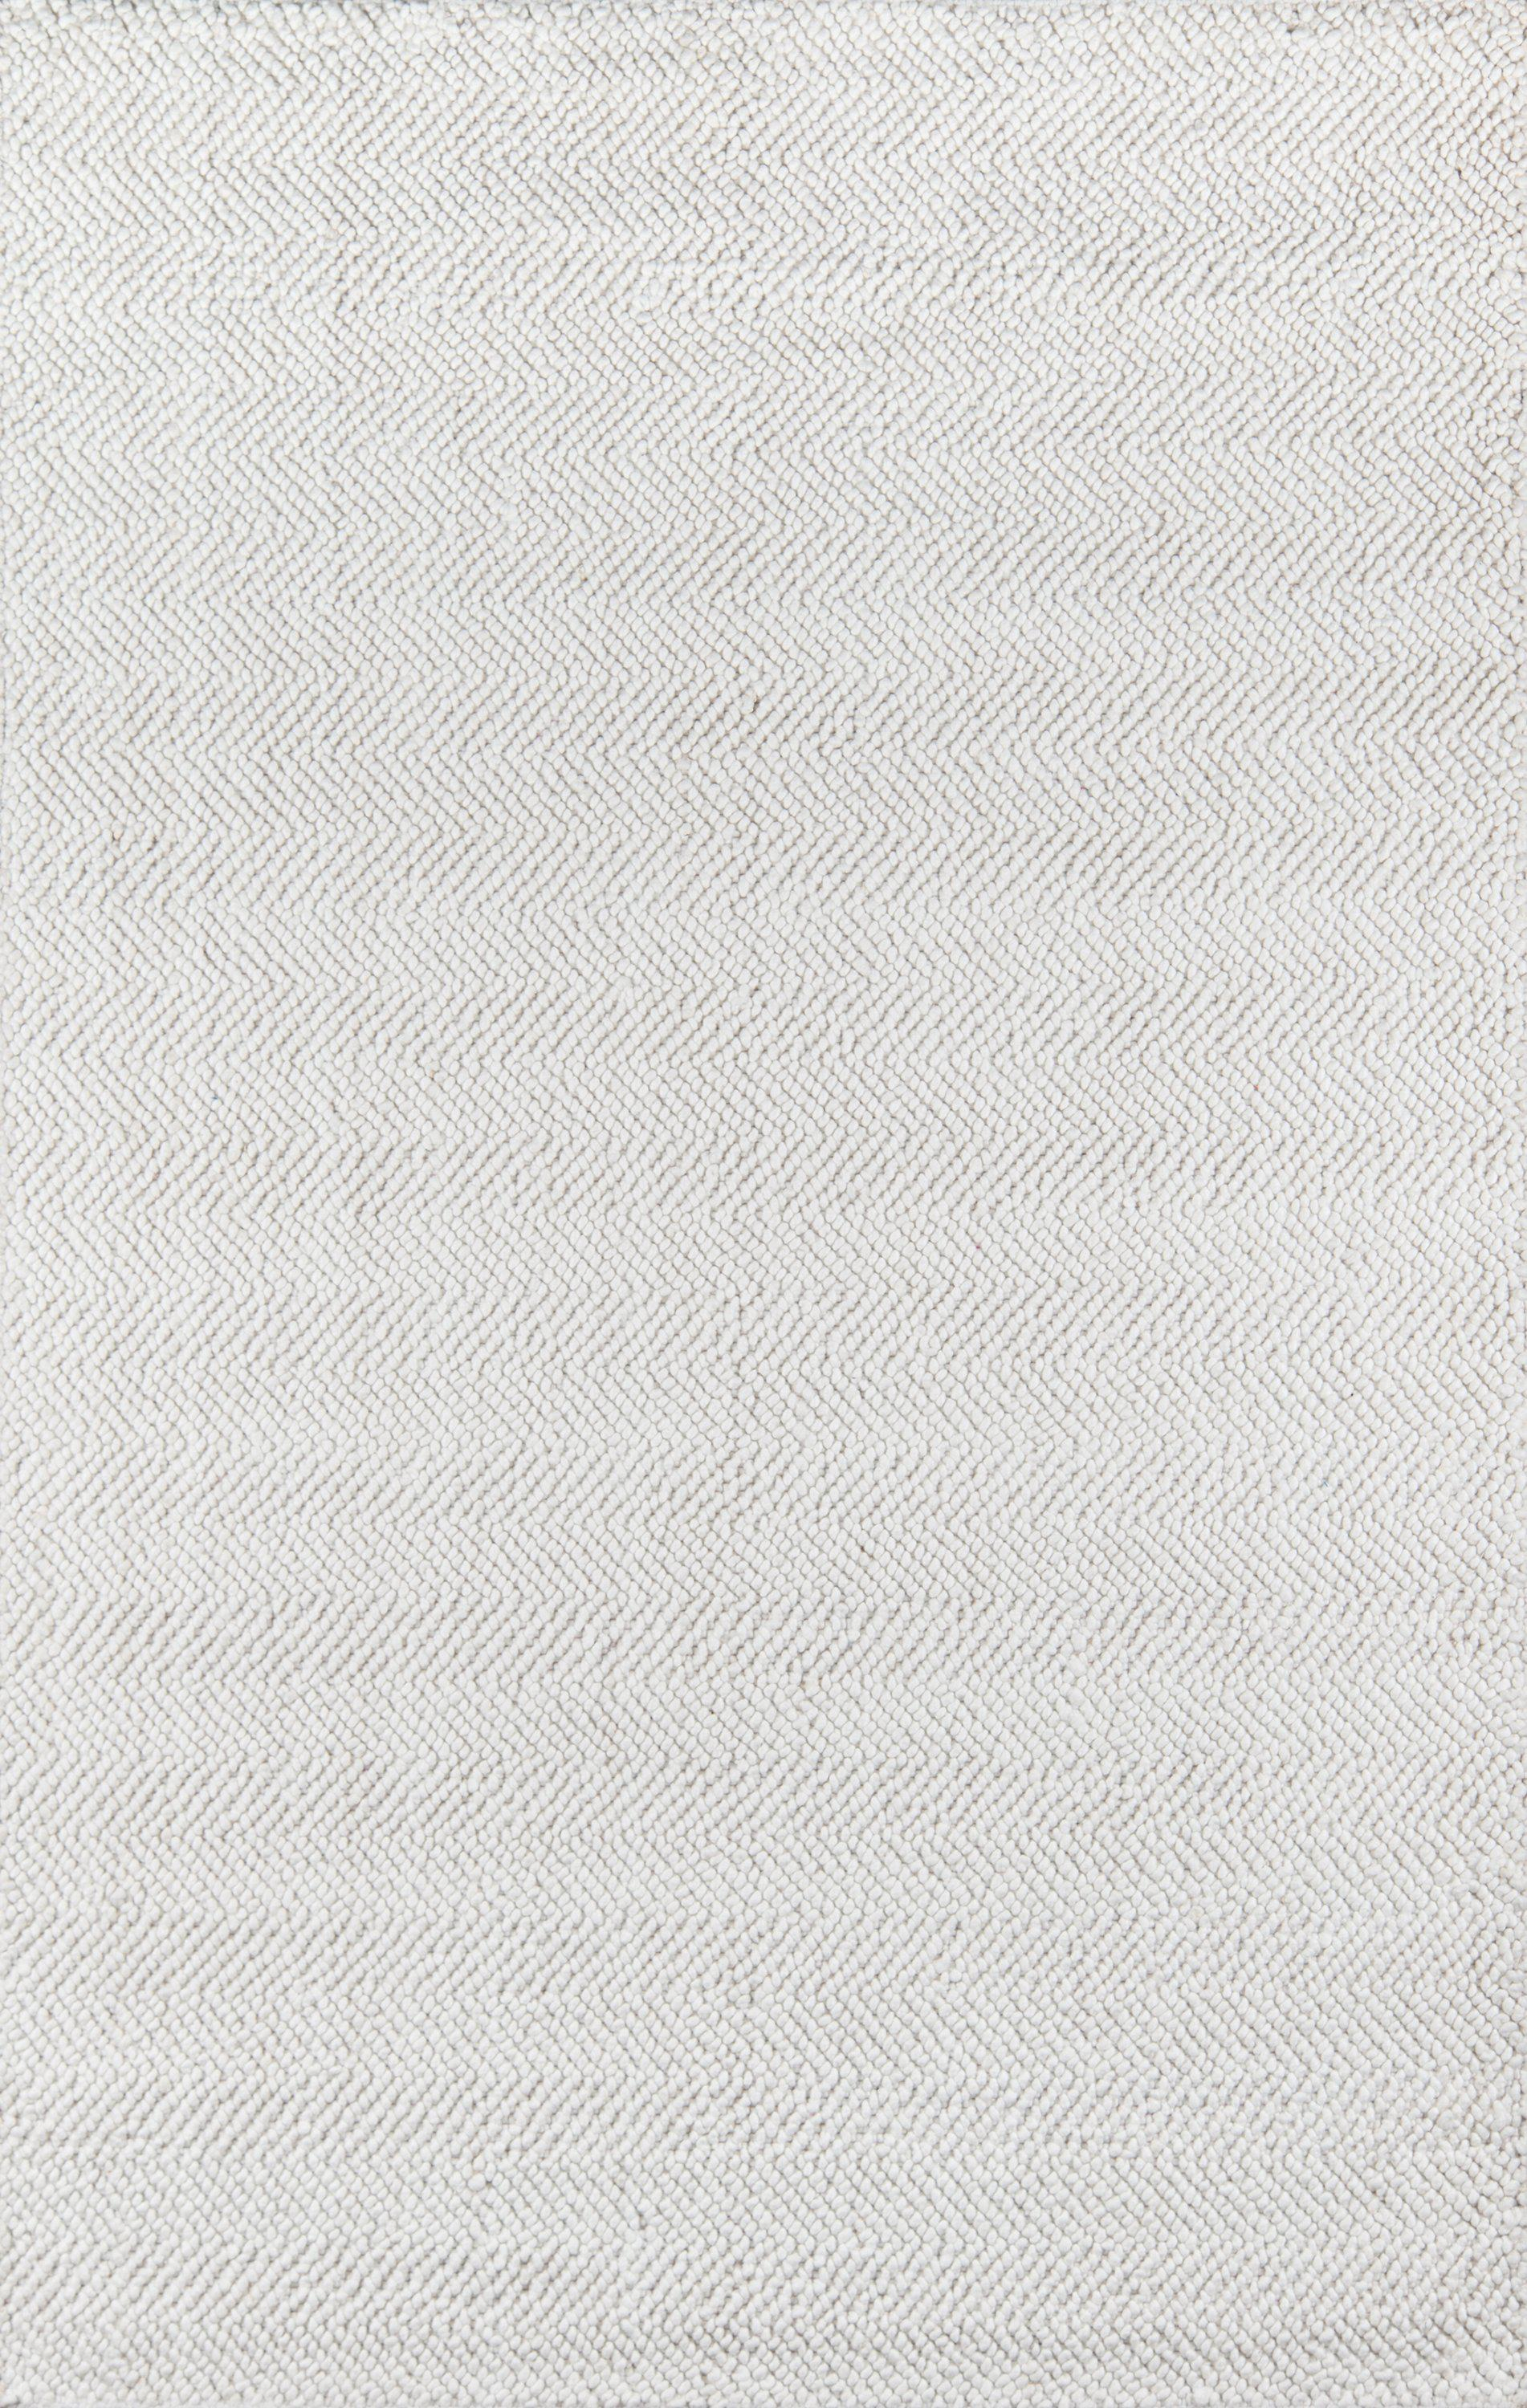 "Erin Gates Ledgebrook LED-1 Washington Ivory Area Rug ( 8'9"" X 11'9"" )"